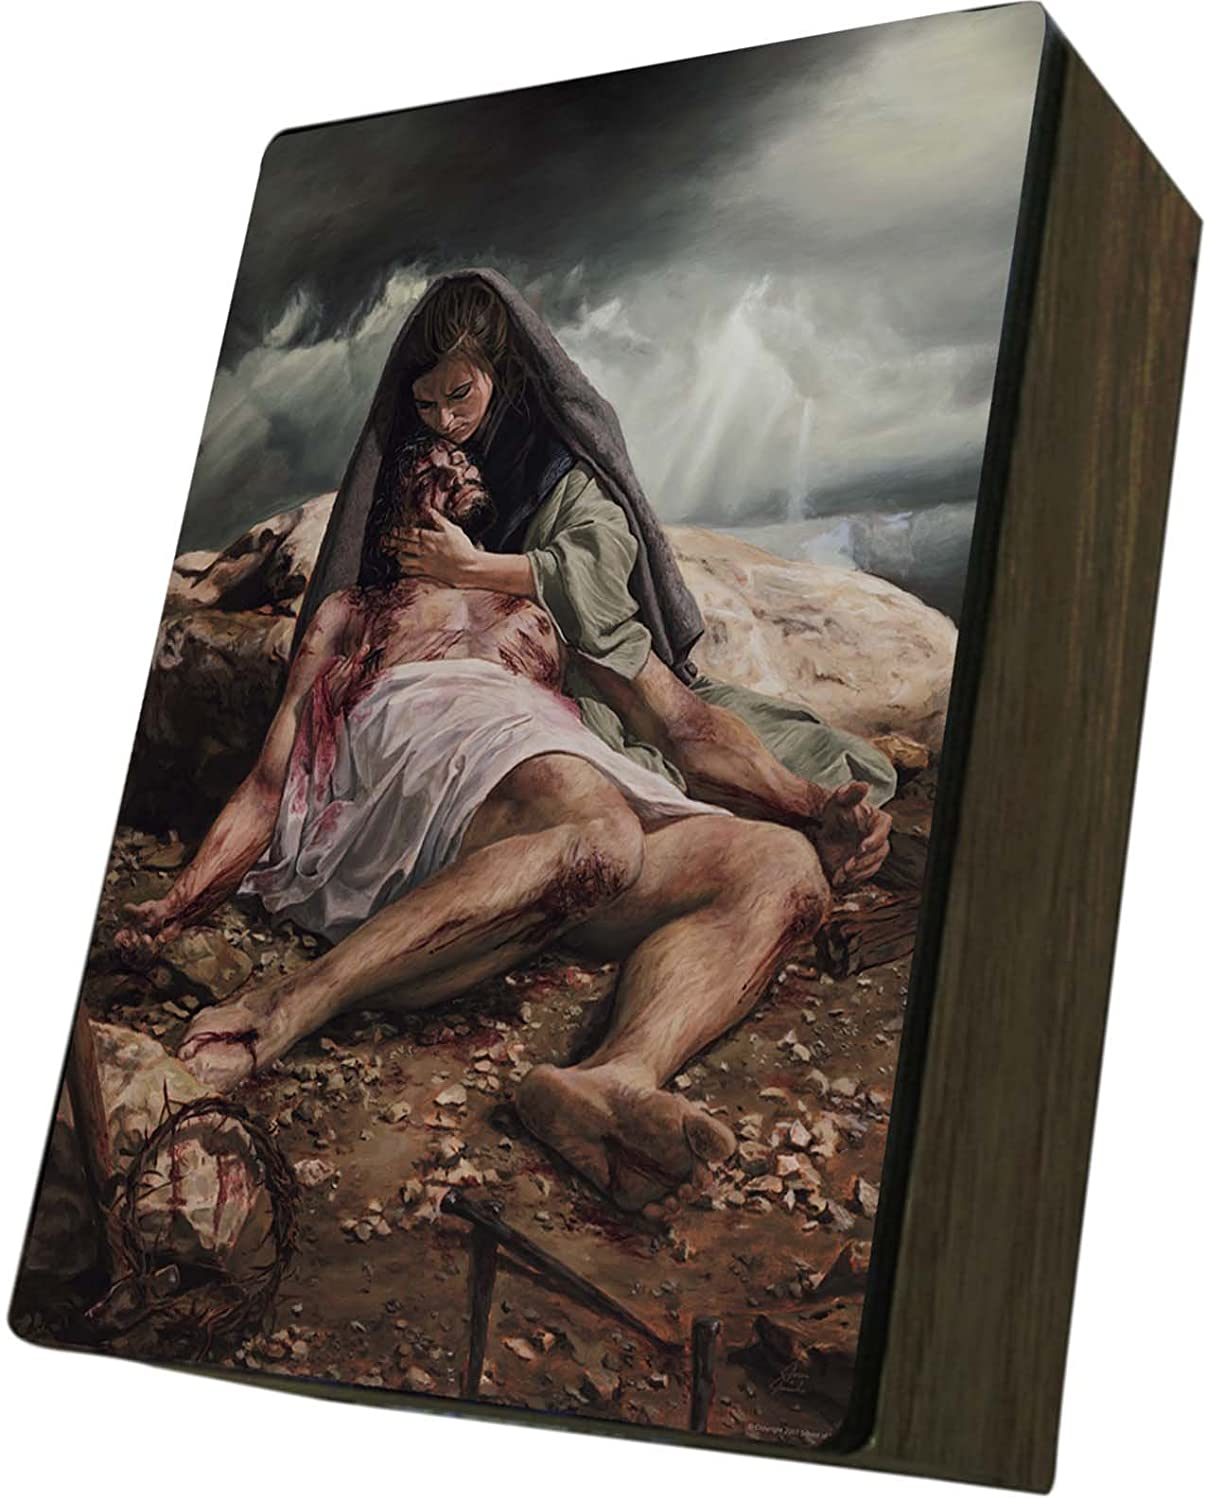 Catholic to the Max|Pieta Jason Jenicke, 4x6.5x2.5in Wooden Keepsake Rosary Jewelry Box, Suede Matte